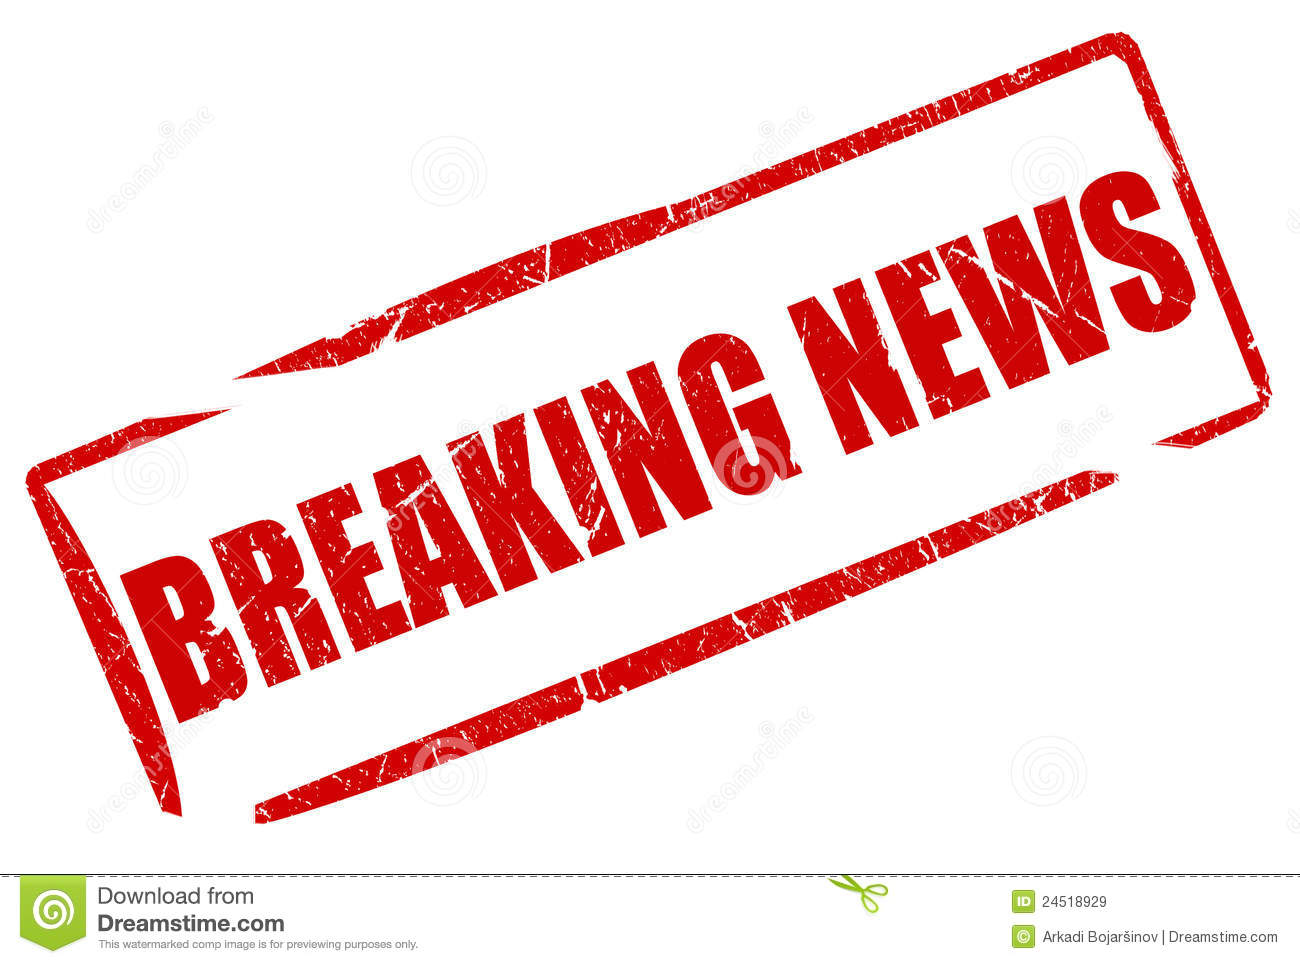 Breaking News Royalty Free Stock Images - Image: 24518929